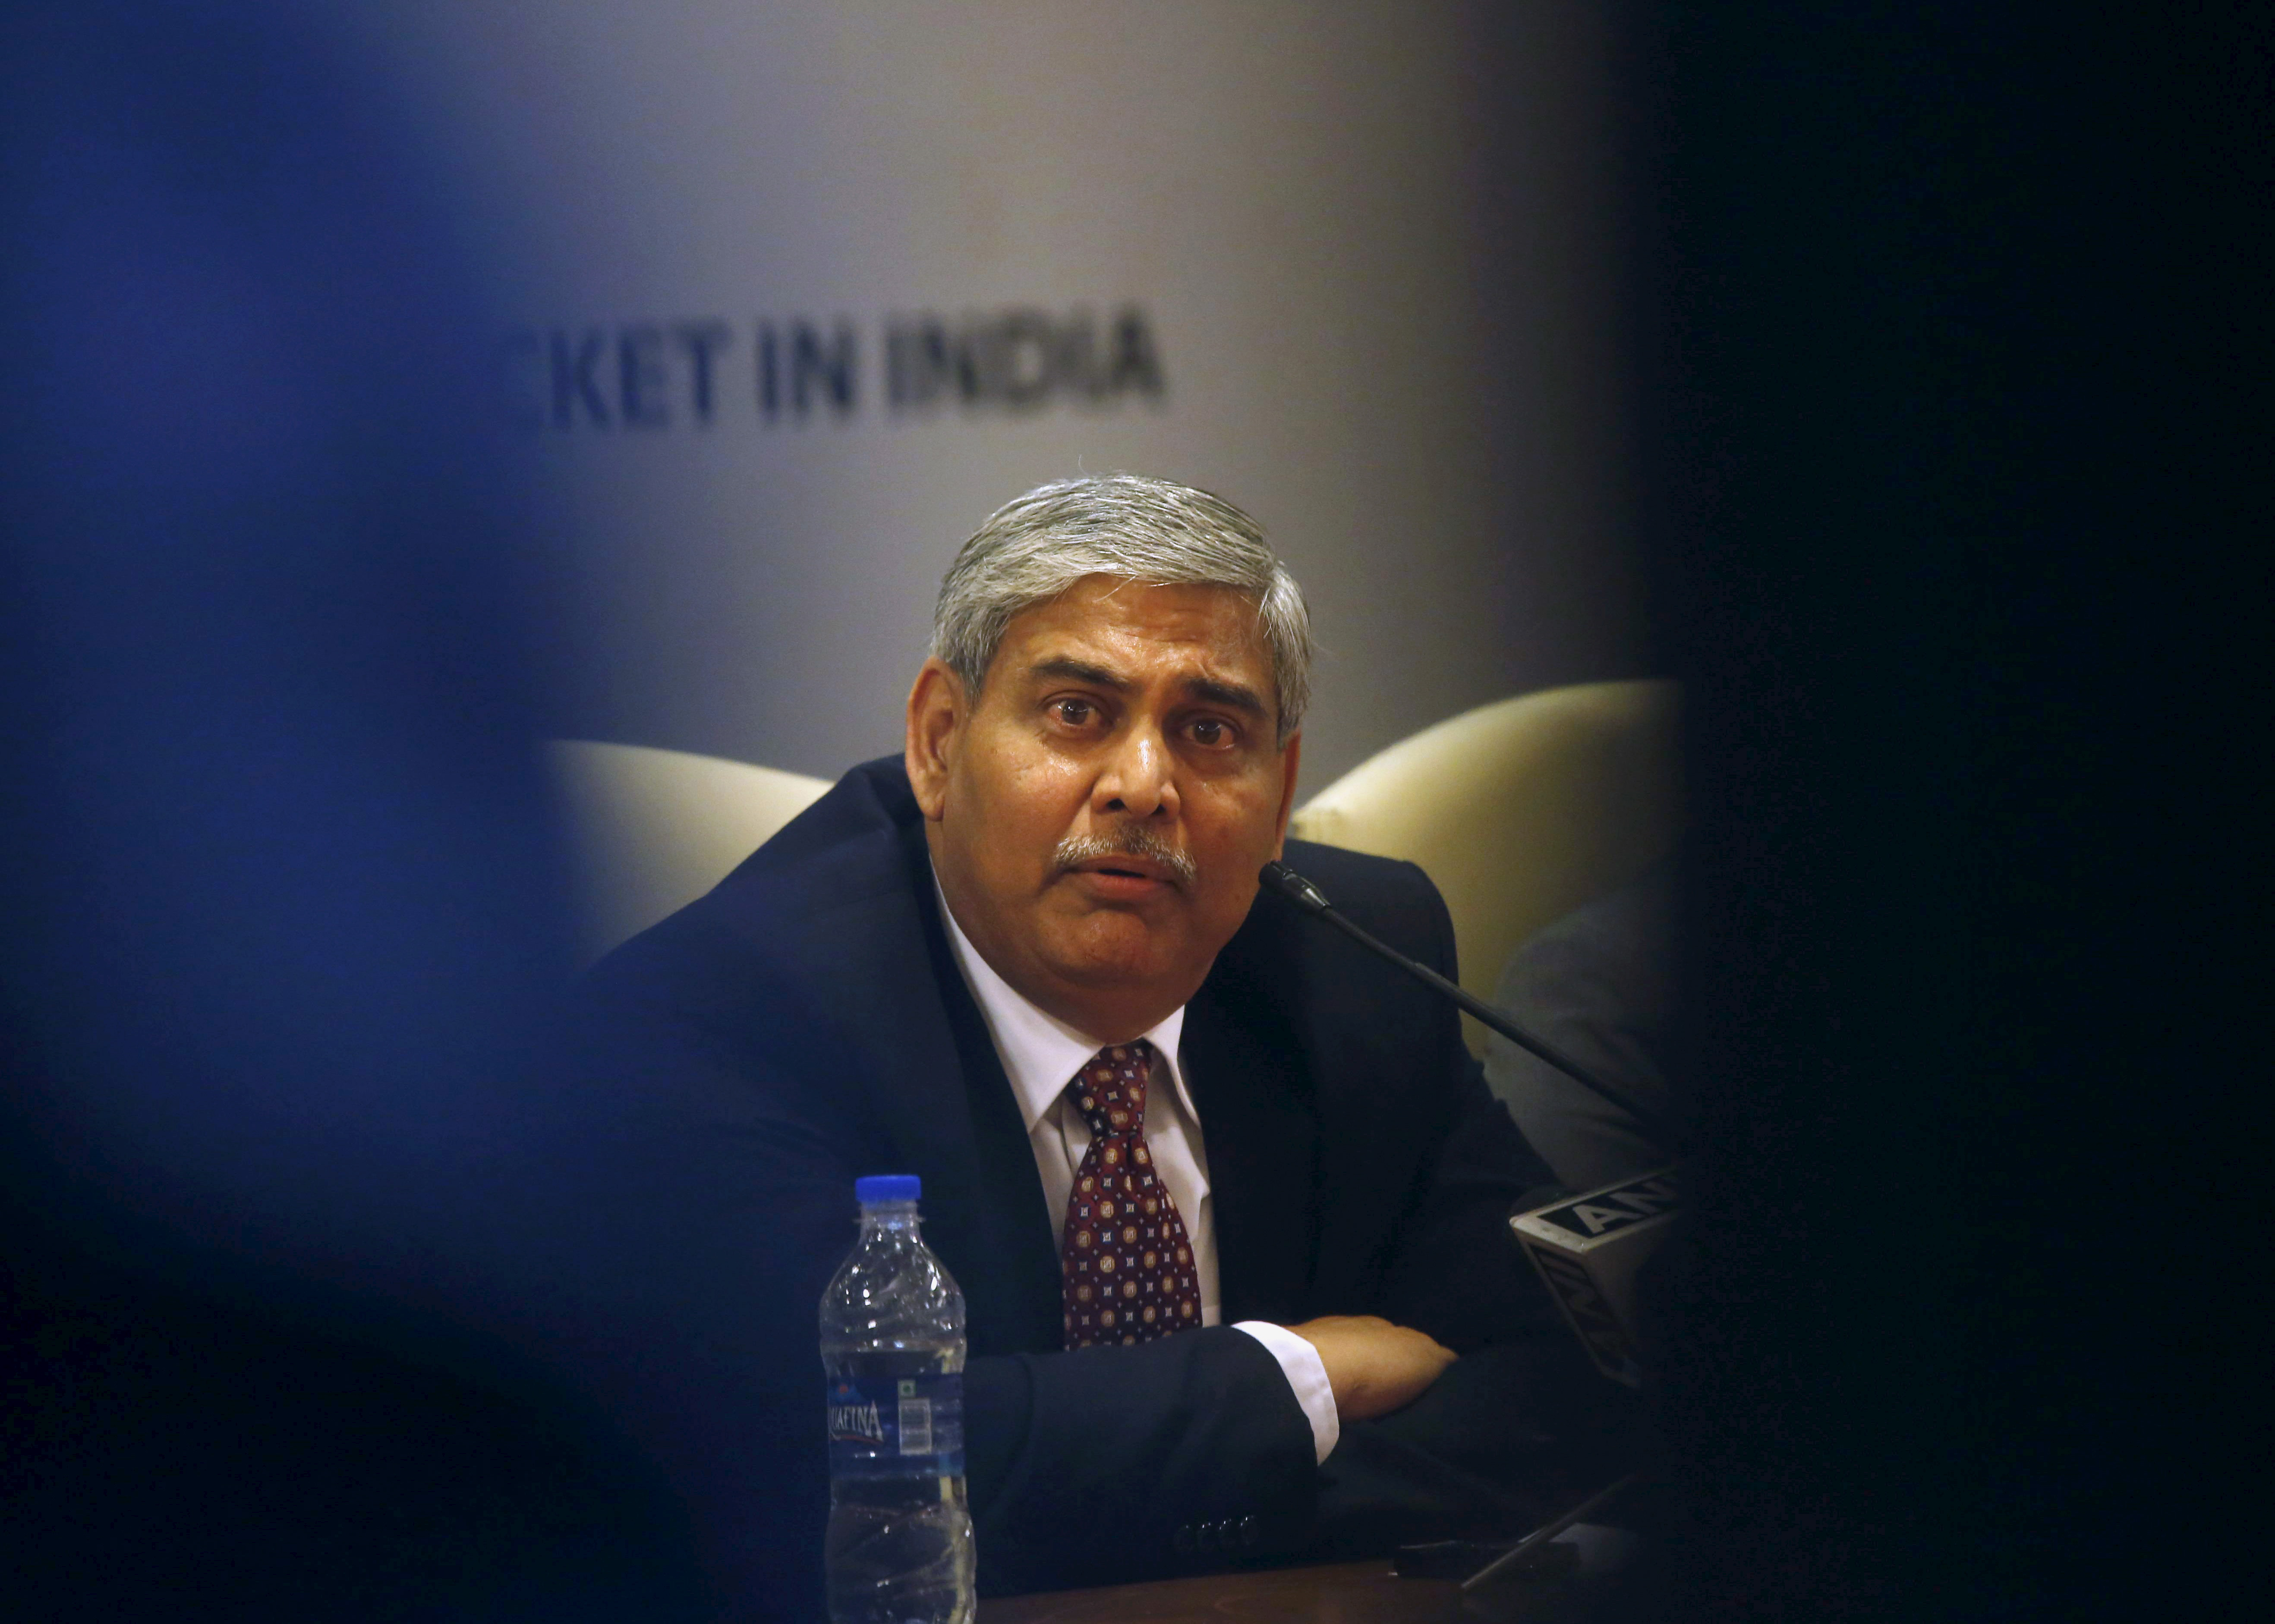 Shashank Manohar, newly-elected president of Board of Control for Cricket in India (BCCI), speaks during a news conference in Mumbai October 4, 2015.